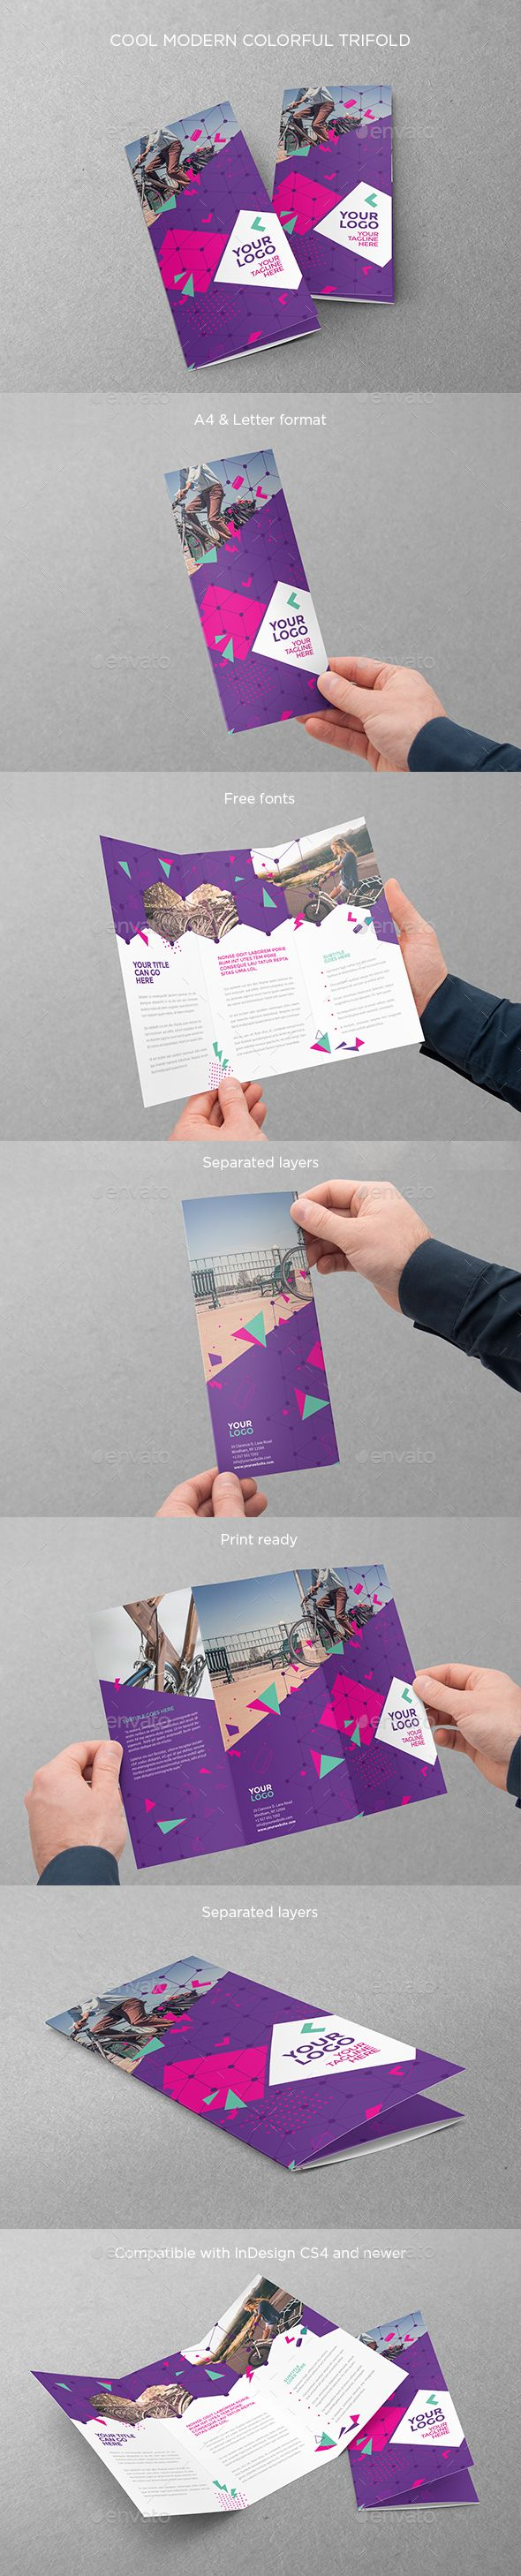 Cool Modern Colorful Trifold Brochure Template InDesign INDD #design Download: http://graphicriver.net/item/cool-modern-colorful-trifold/14042175?ref=ksioks